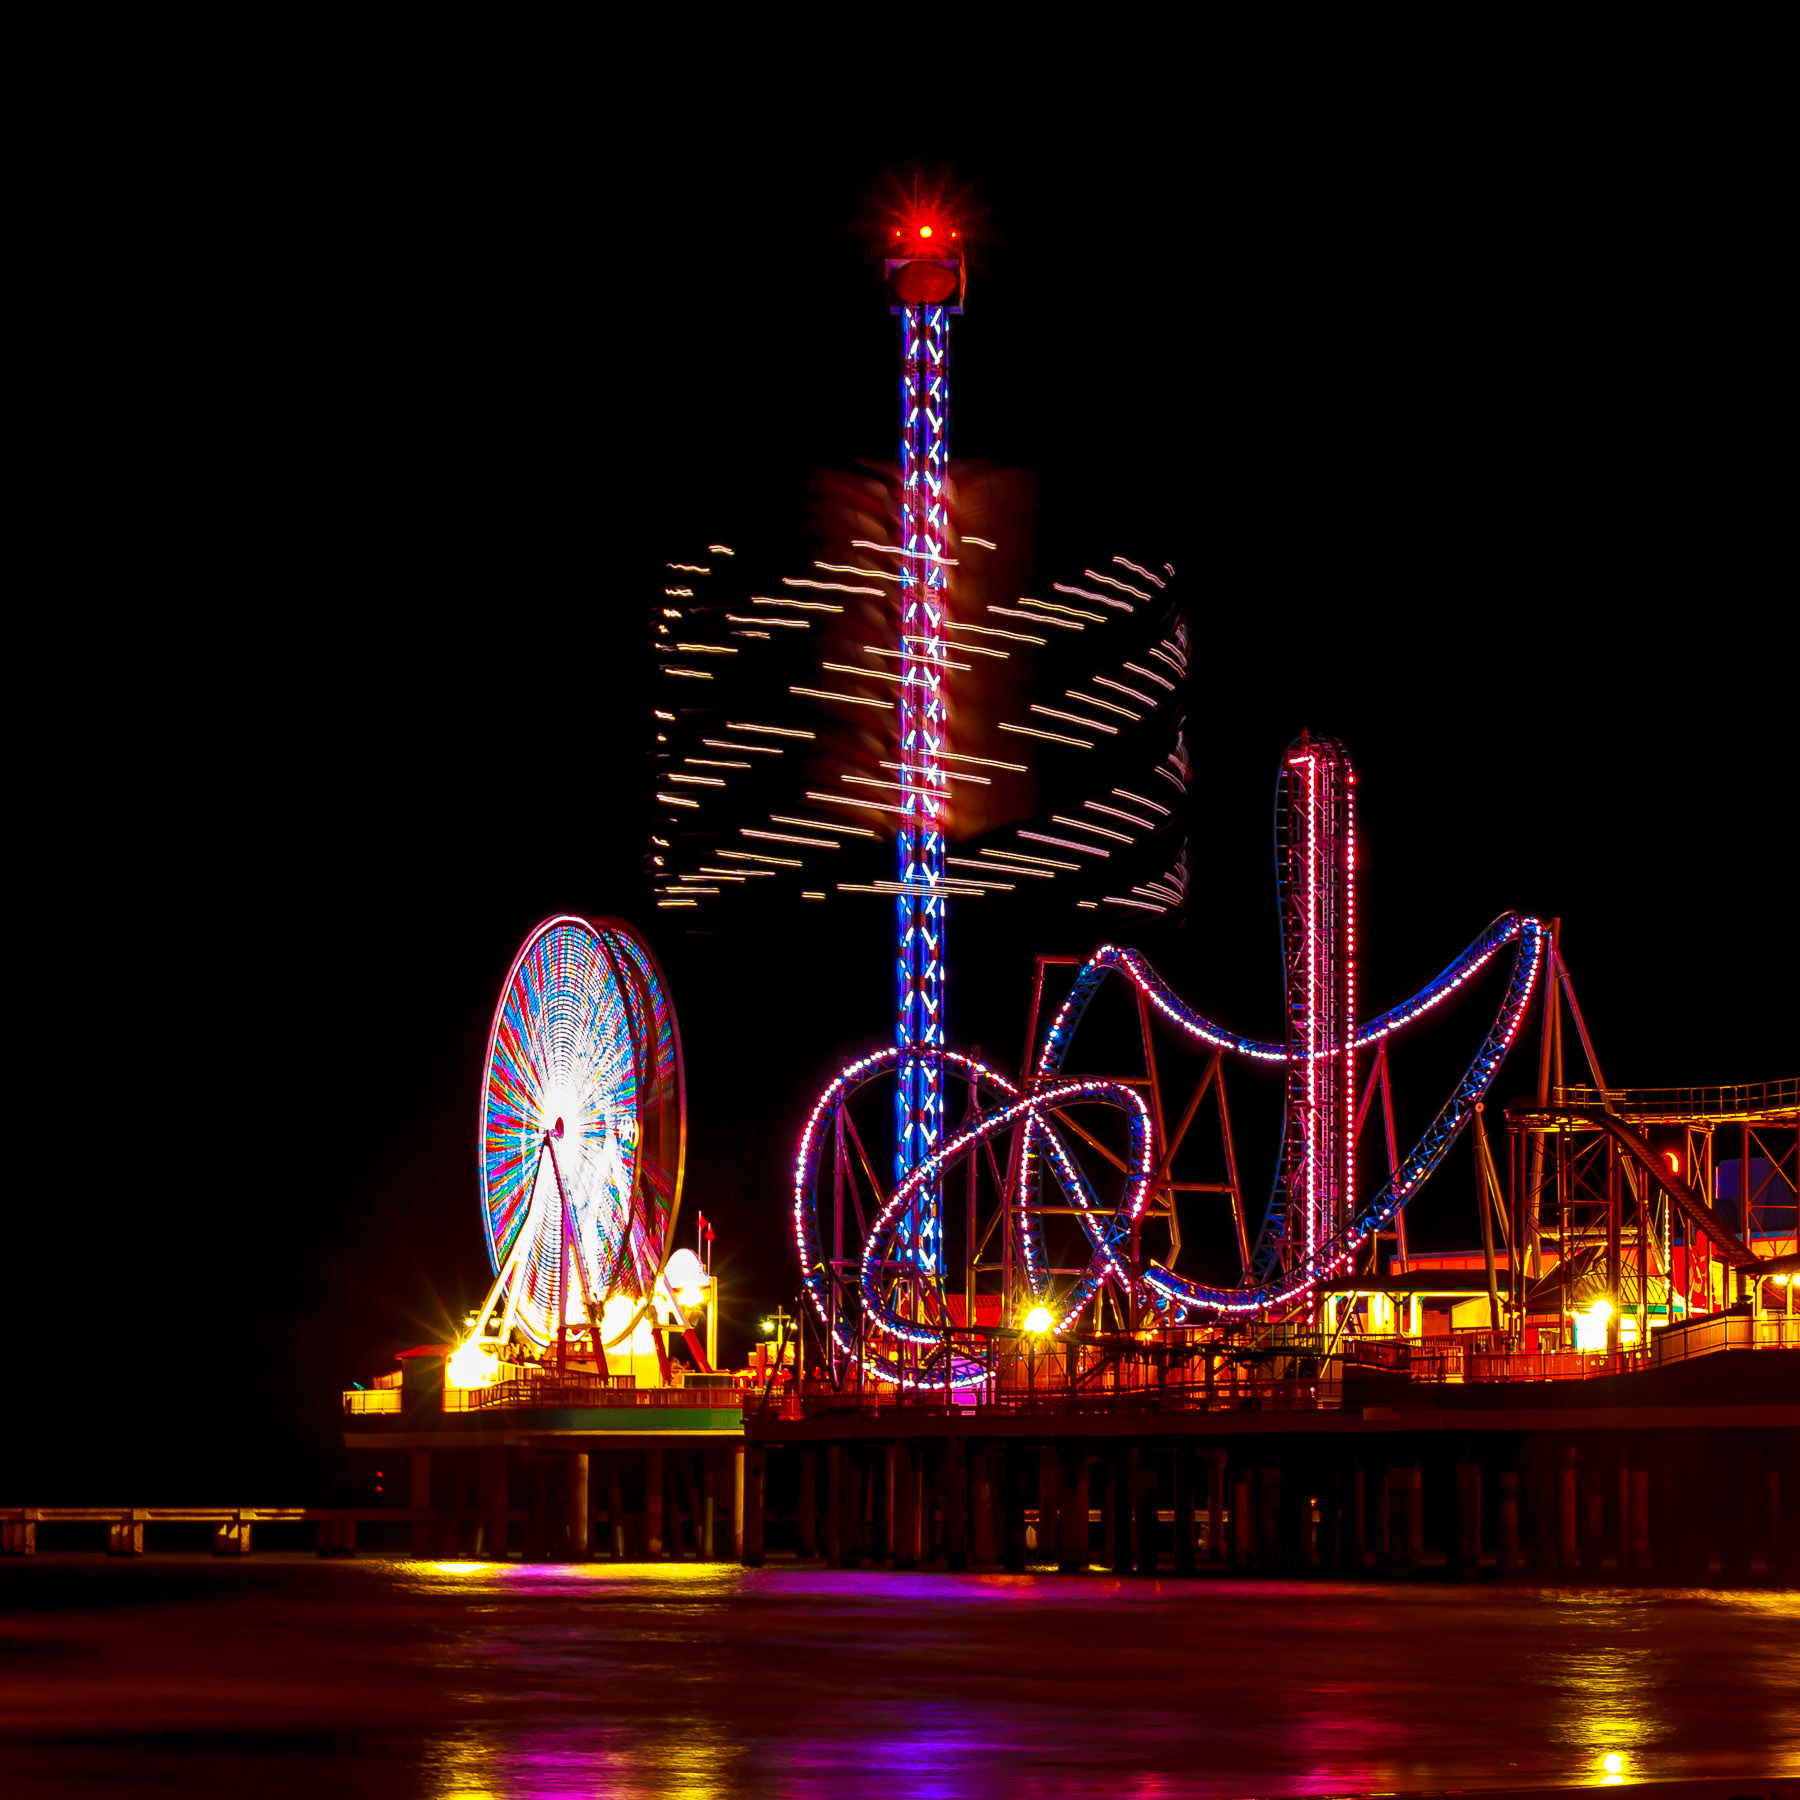 A long-exposure shot of Galveston, Texas' Pleasure Pier at night.